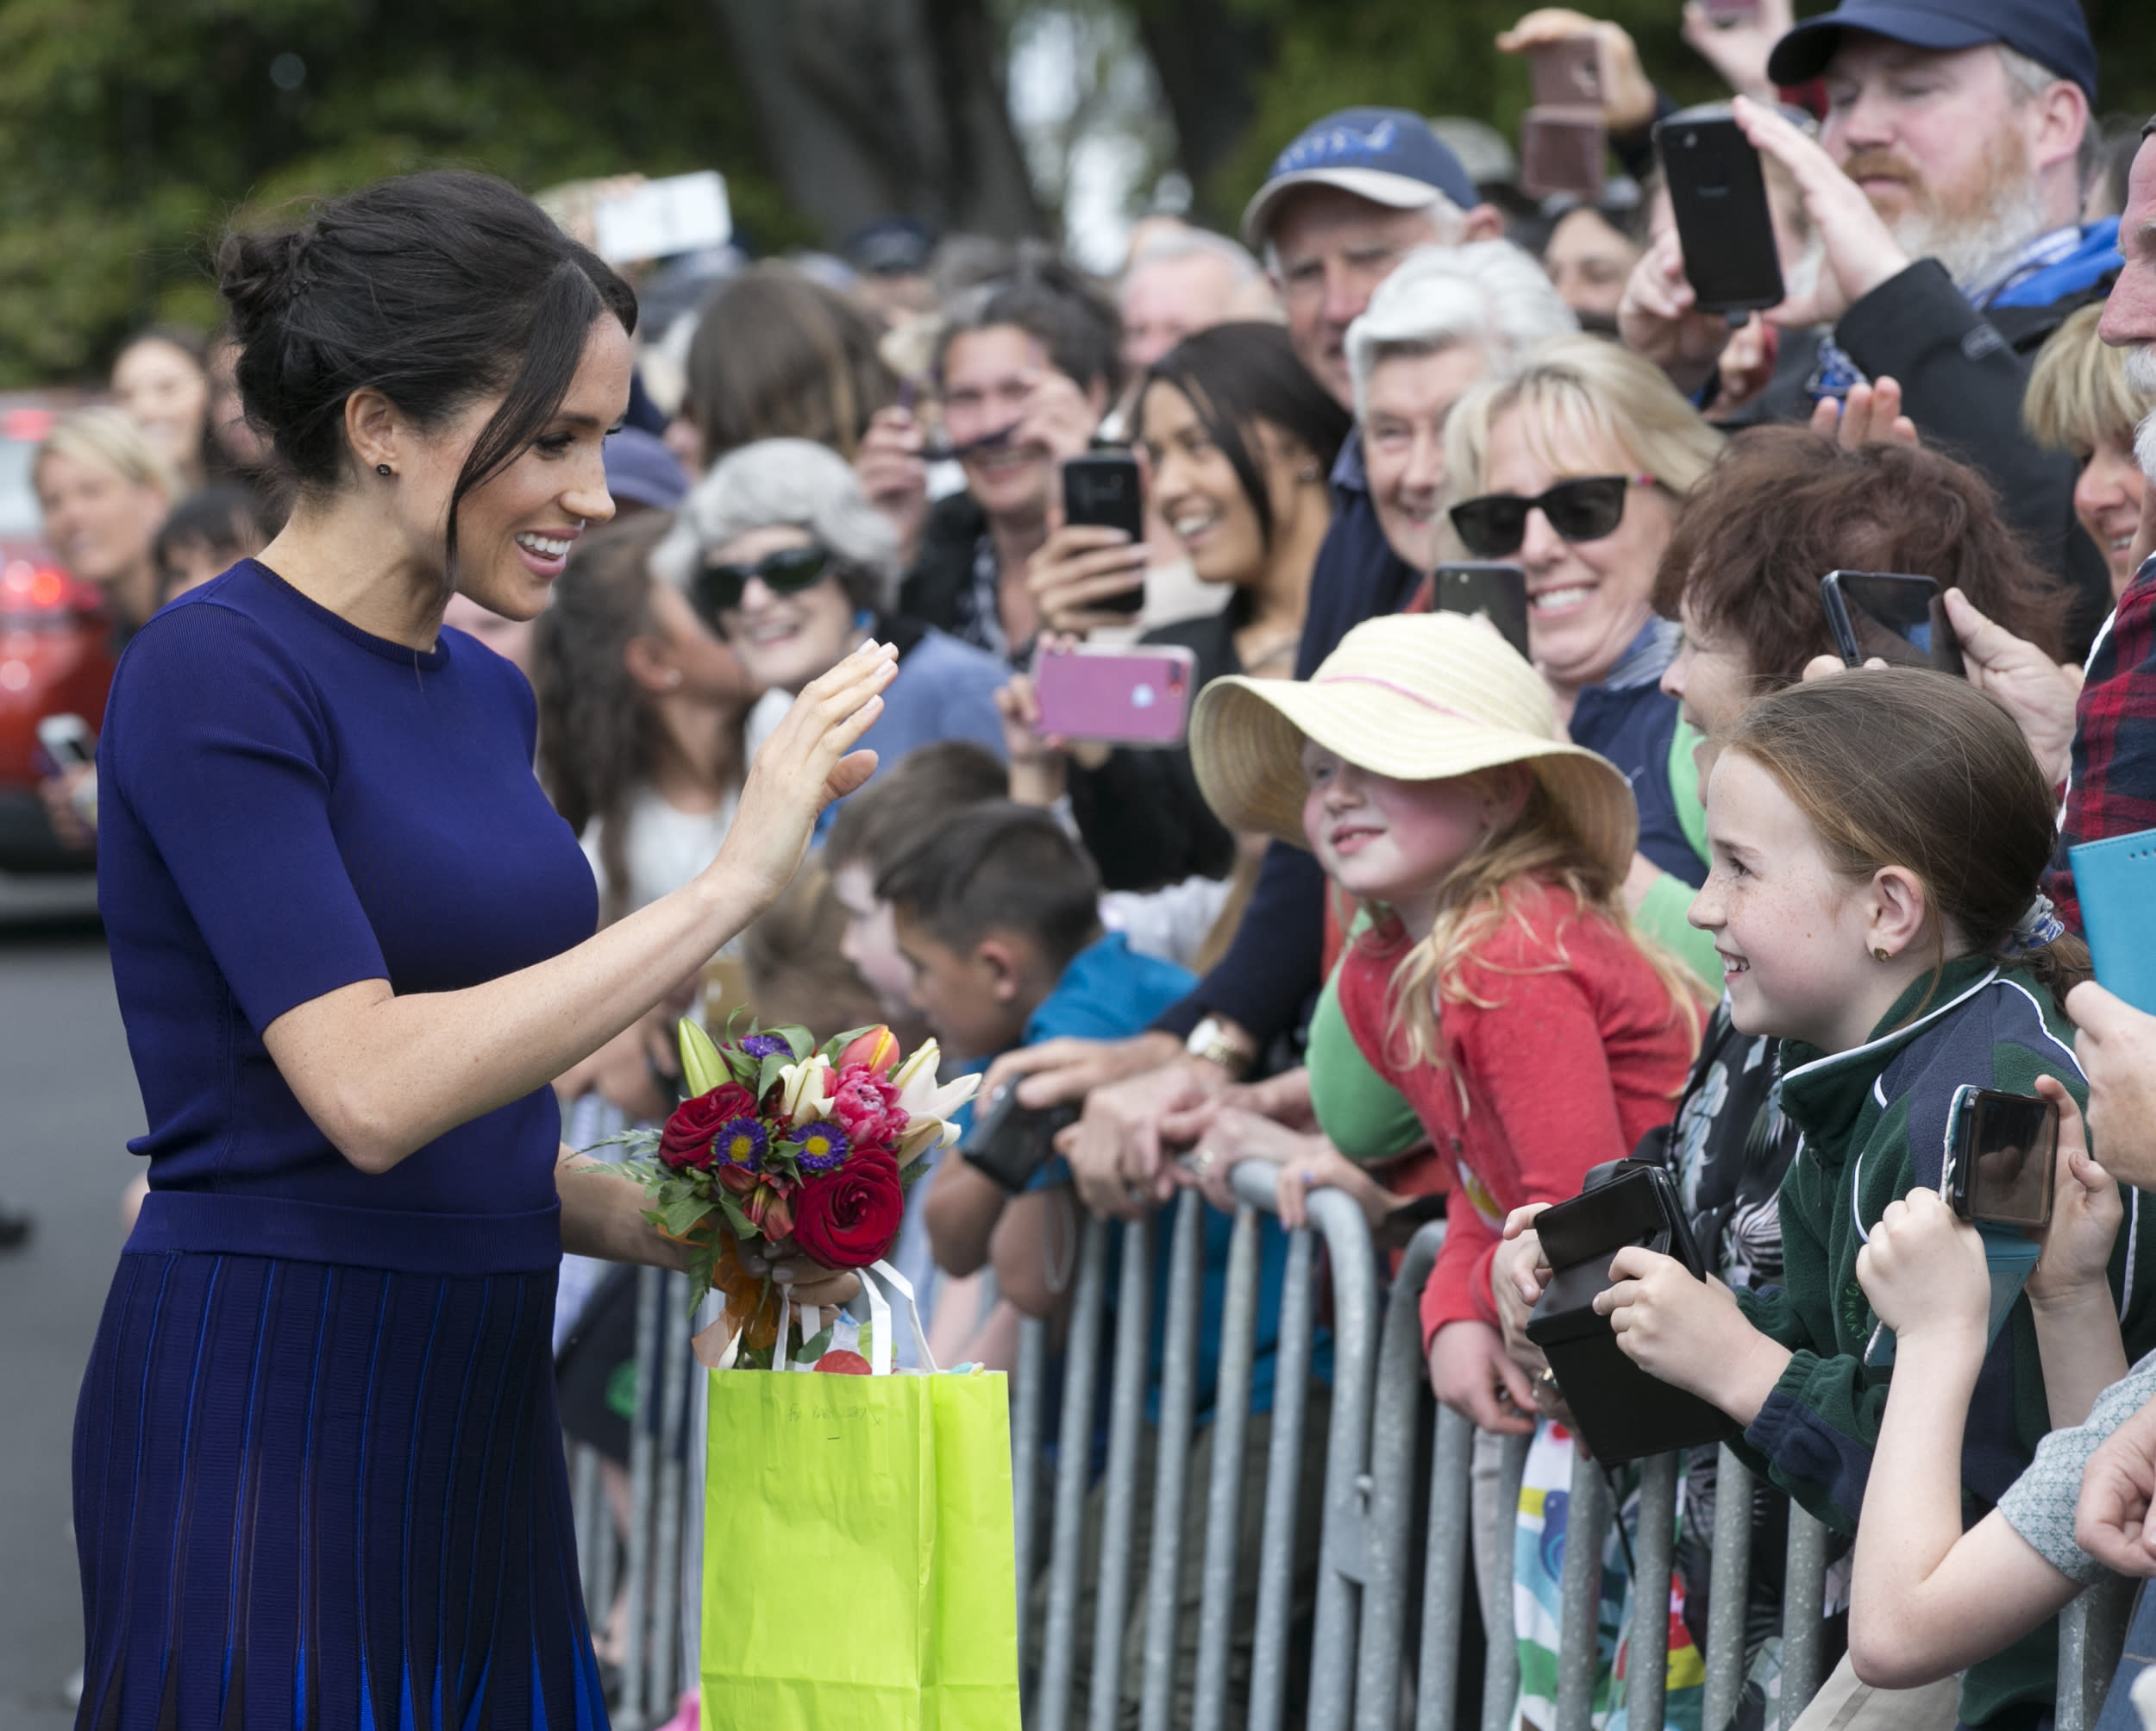 The Duchess of Sussex waves to the crowds at Government Gardens during their visit to Rotorua, New Zealand on October 31, 2018. (Photo by Alan Gibson/New Zealand Herald/Sipa USA)